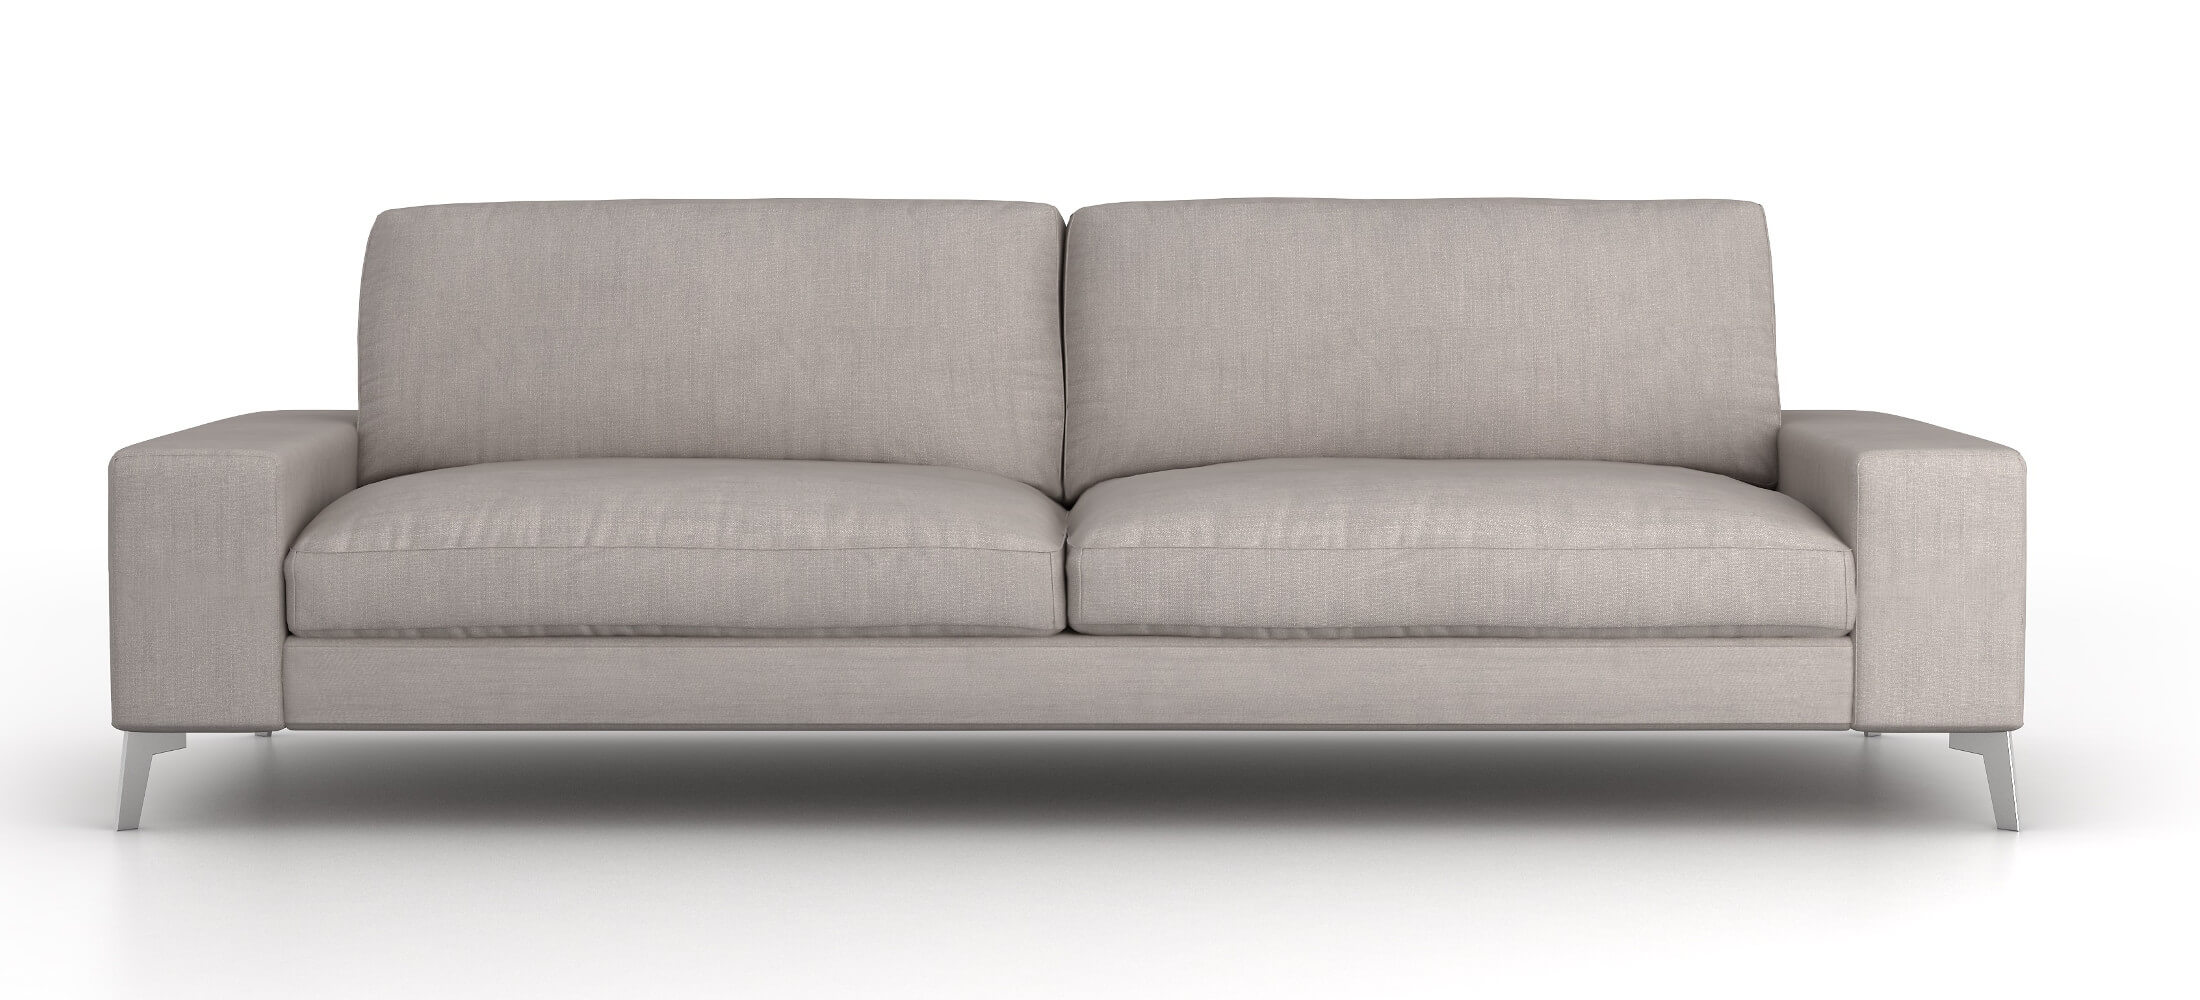 Sofa Zow - Vista frontal